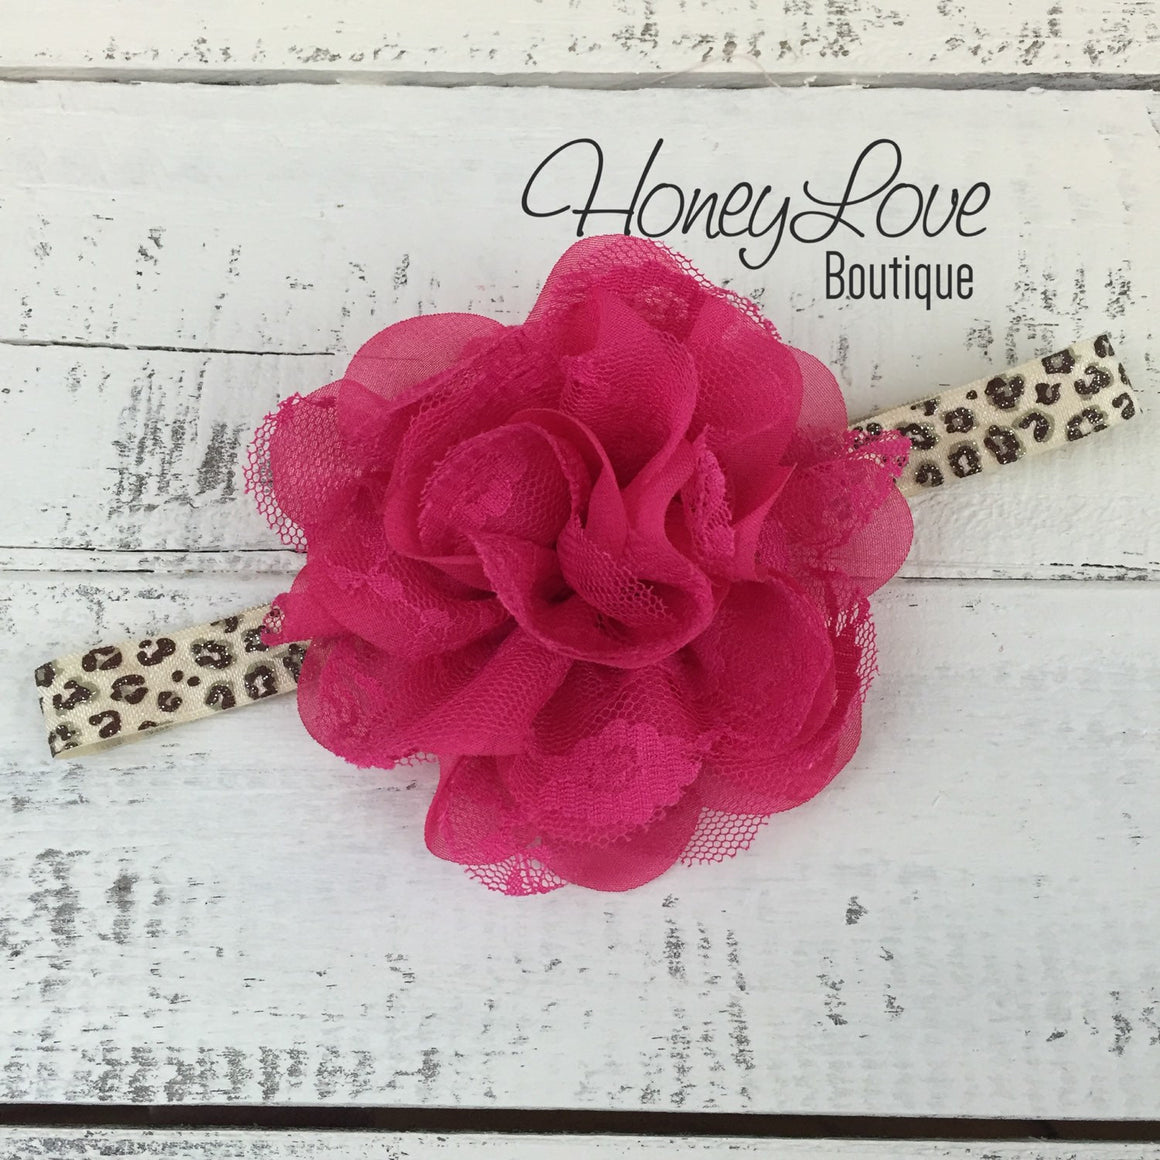 Leopard Glitter Elastic and Flower Headband - Hot Pink, Ivory, Brown, Black - HoneyLoveBoutique